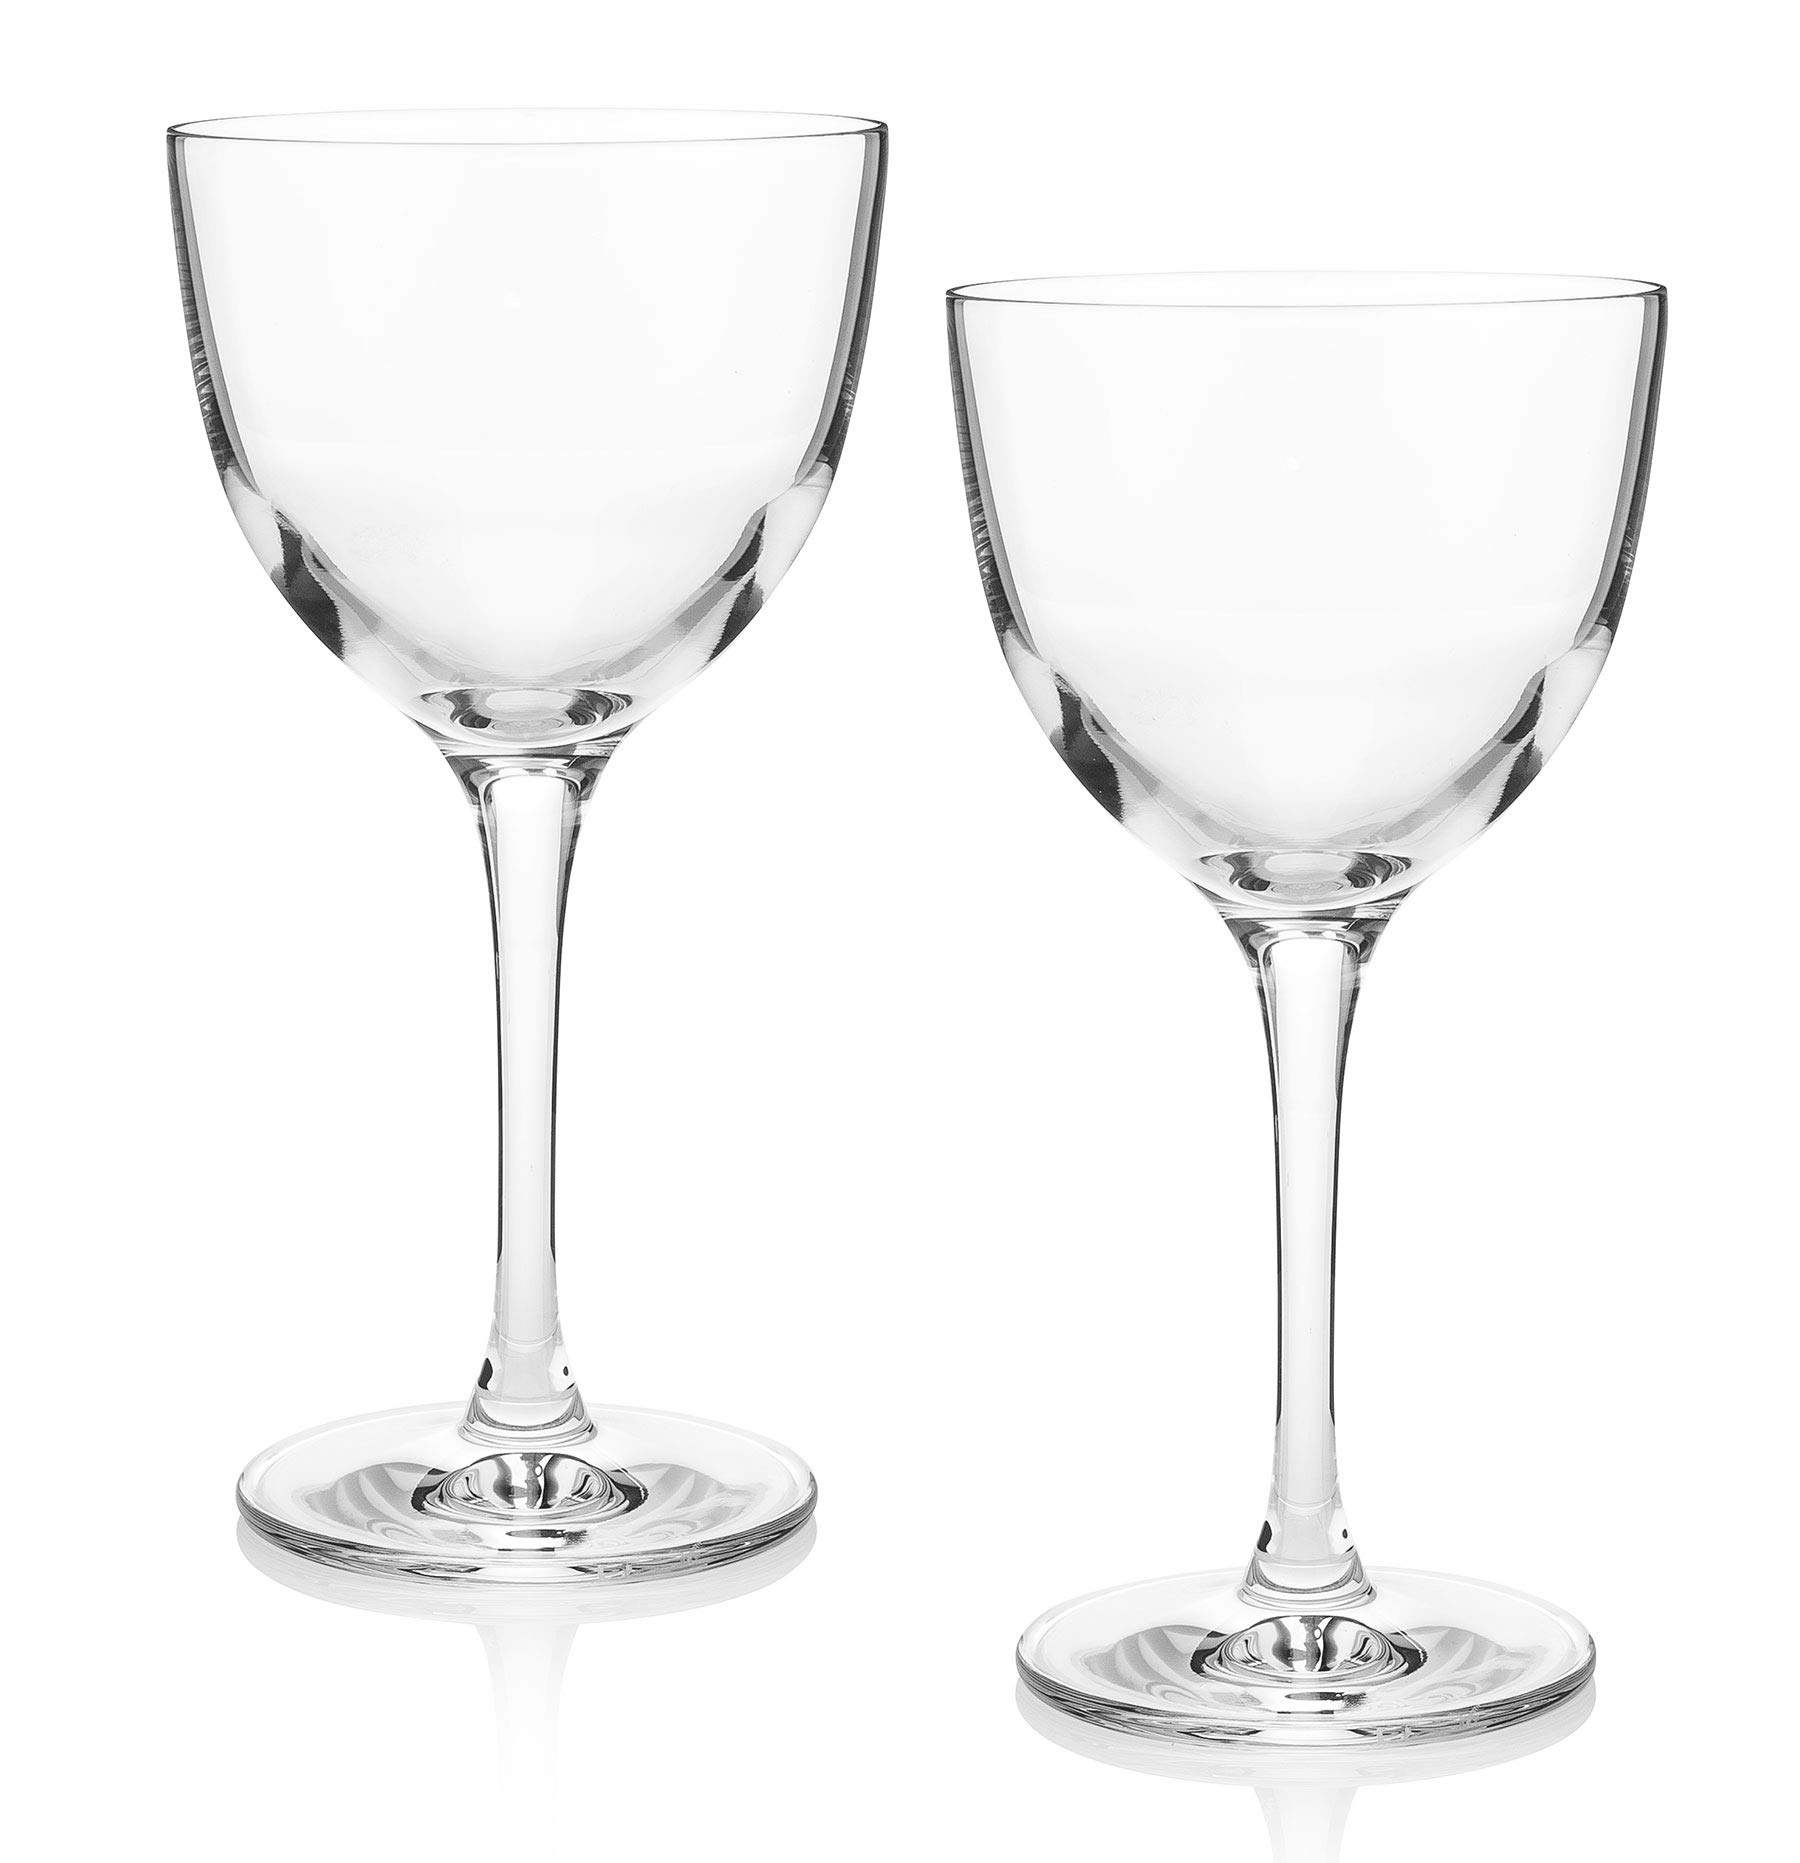 The Original Nick & Nora Crystal Martini Glasses (Gift Box of 2) by HISTORY COMPANY